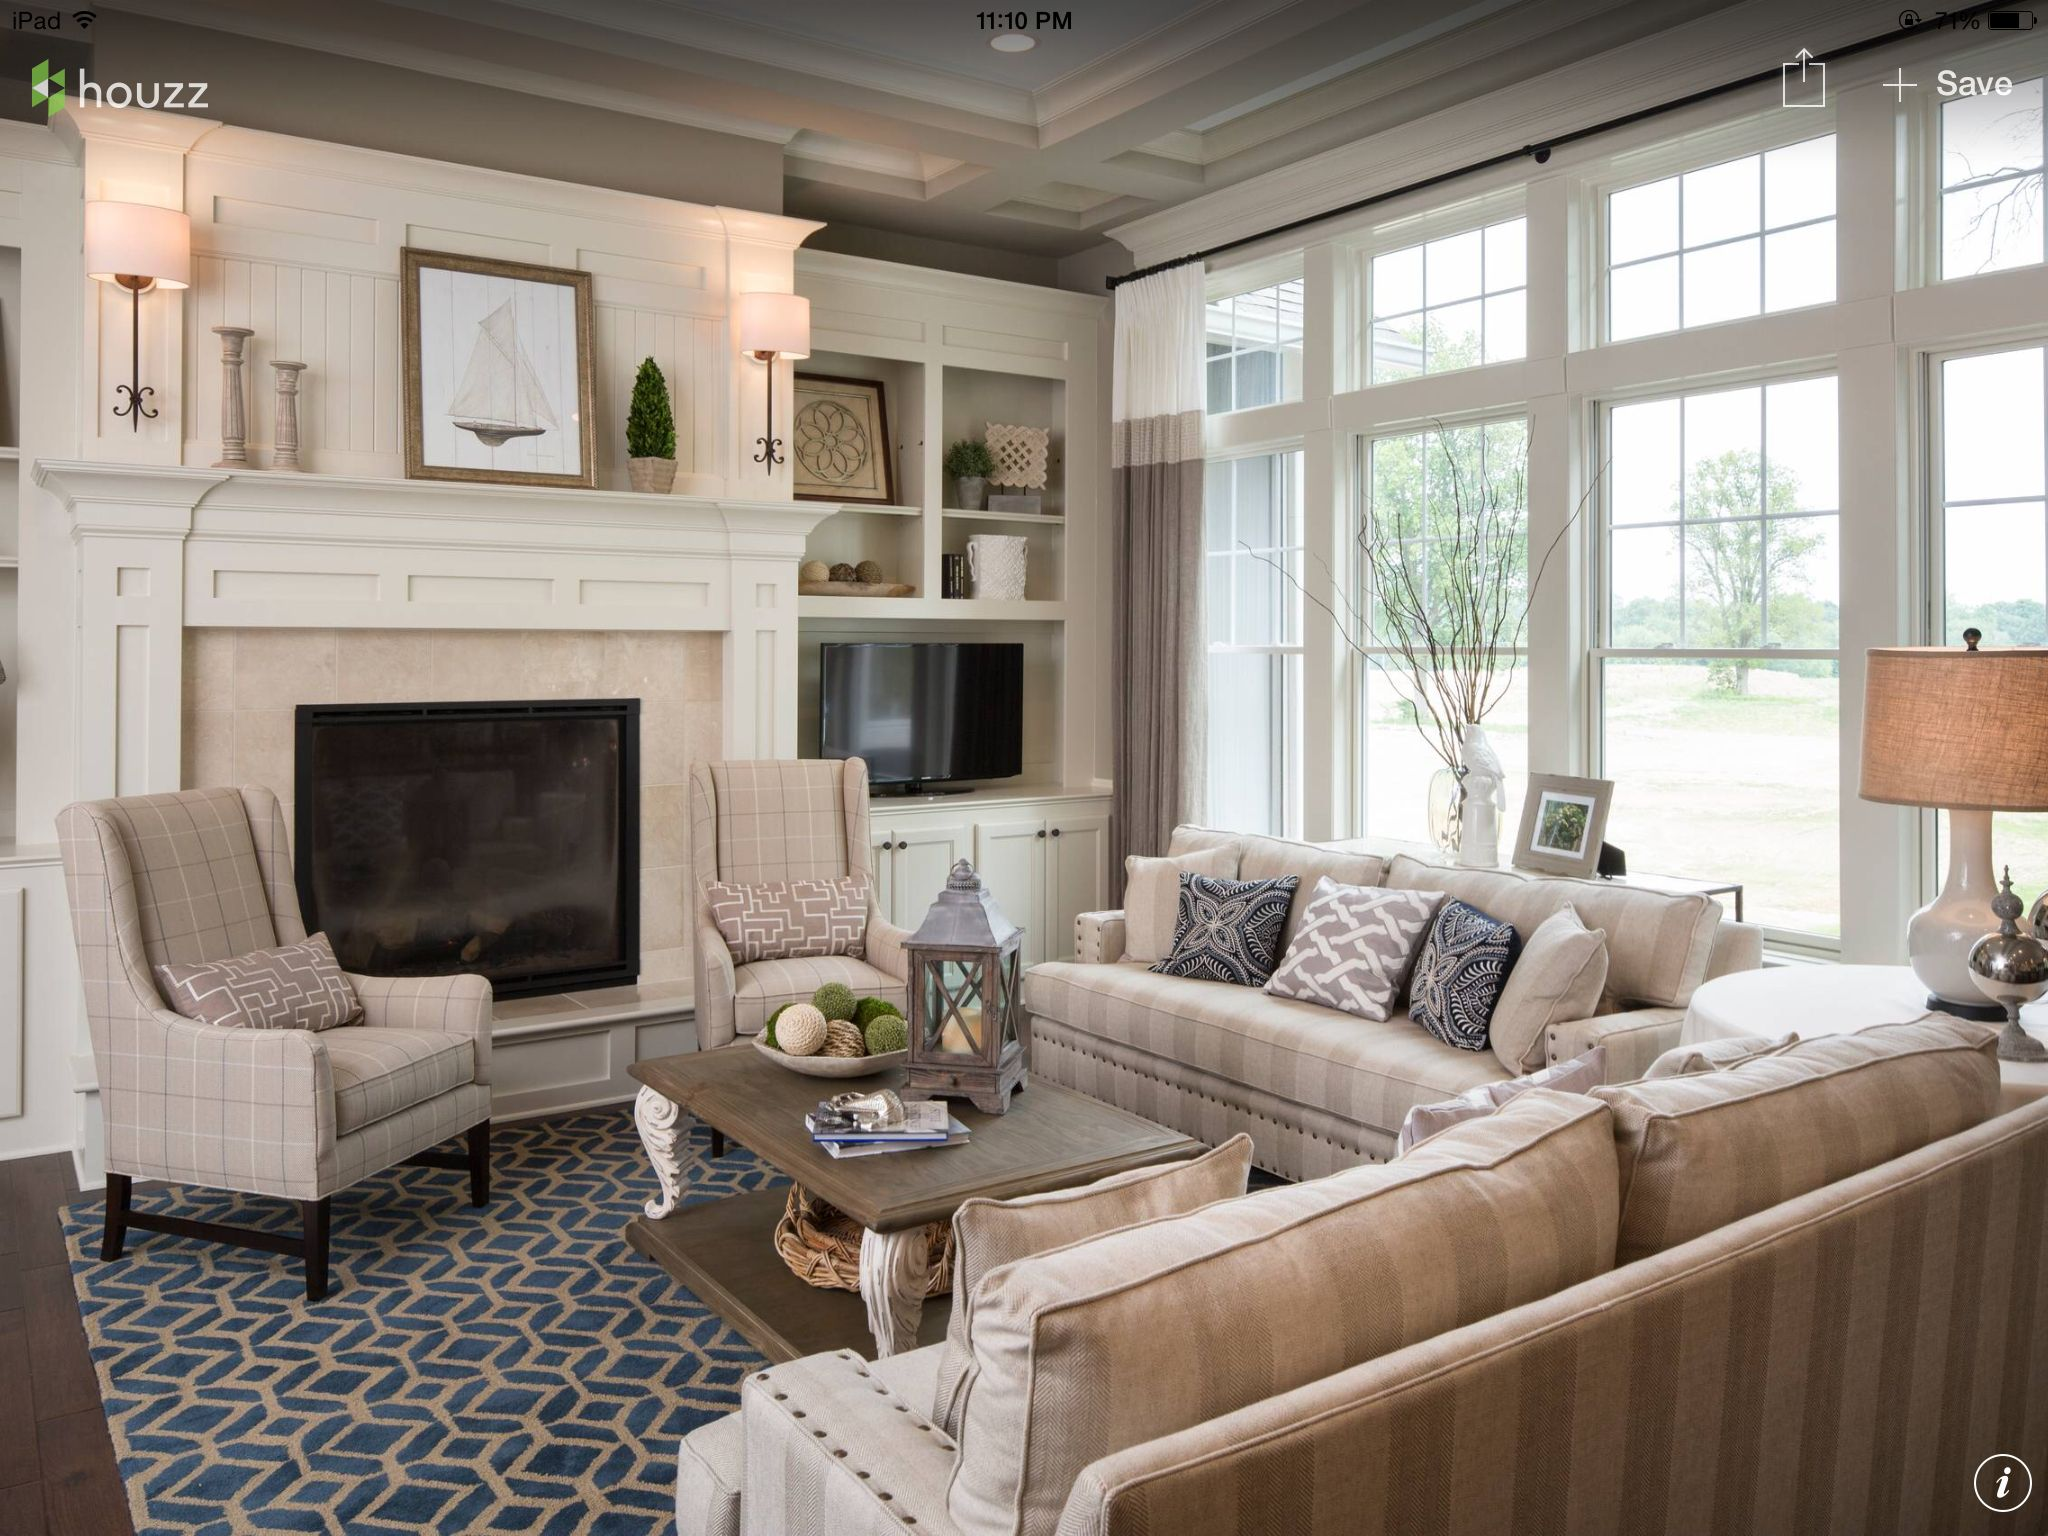 Family Room Feels Sophisticated And Also Very Cozy, With Its Navy Blue  Accents. The Fireplace Surround Is Cardinal Beige Marble Tile.